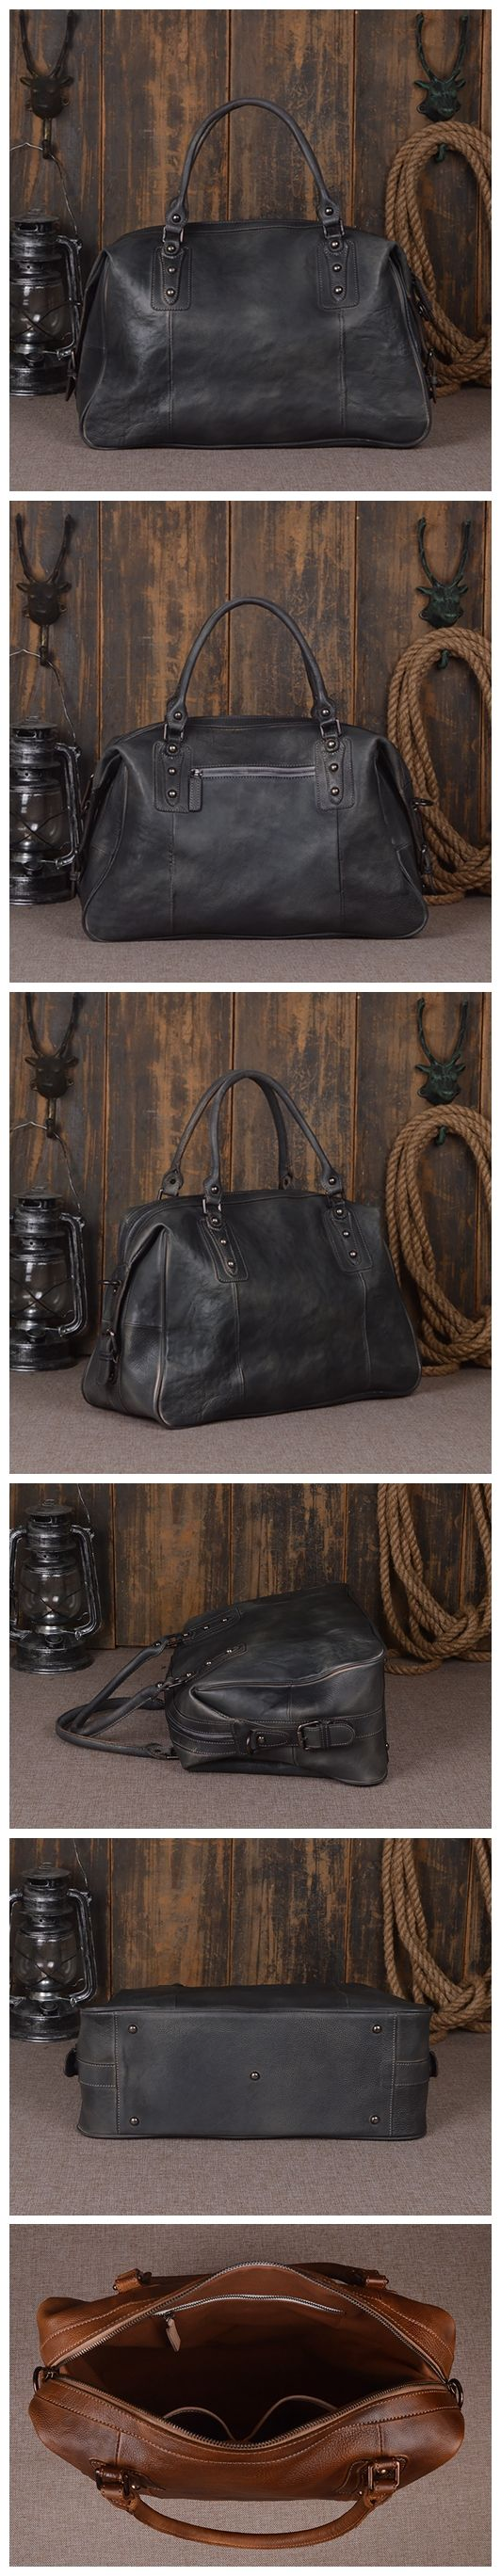 Leather Duffle Bag for Men and Women Overnight Duffle Bags Weekend Bag Travel Luggage Gym Tote Bag